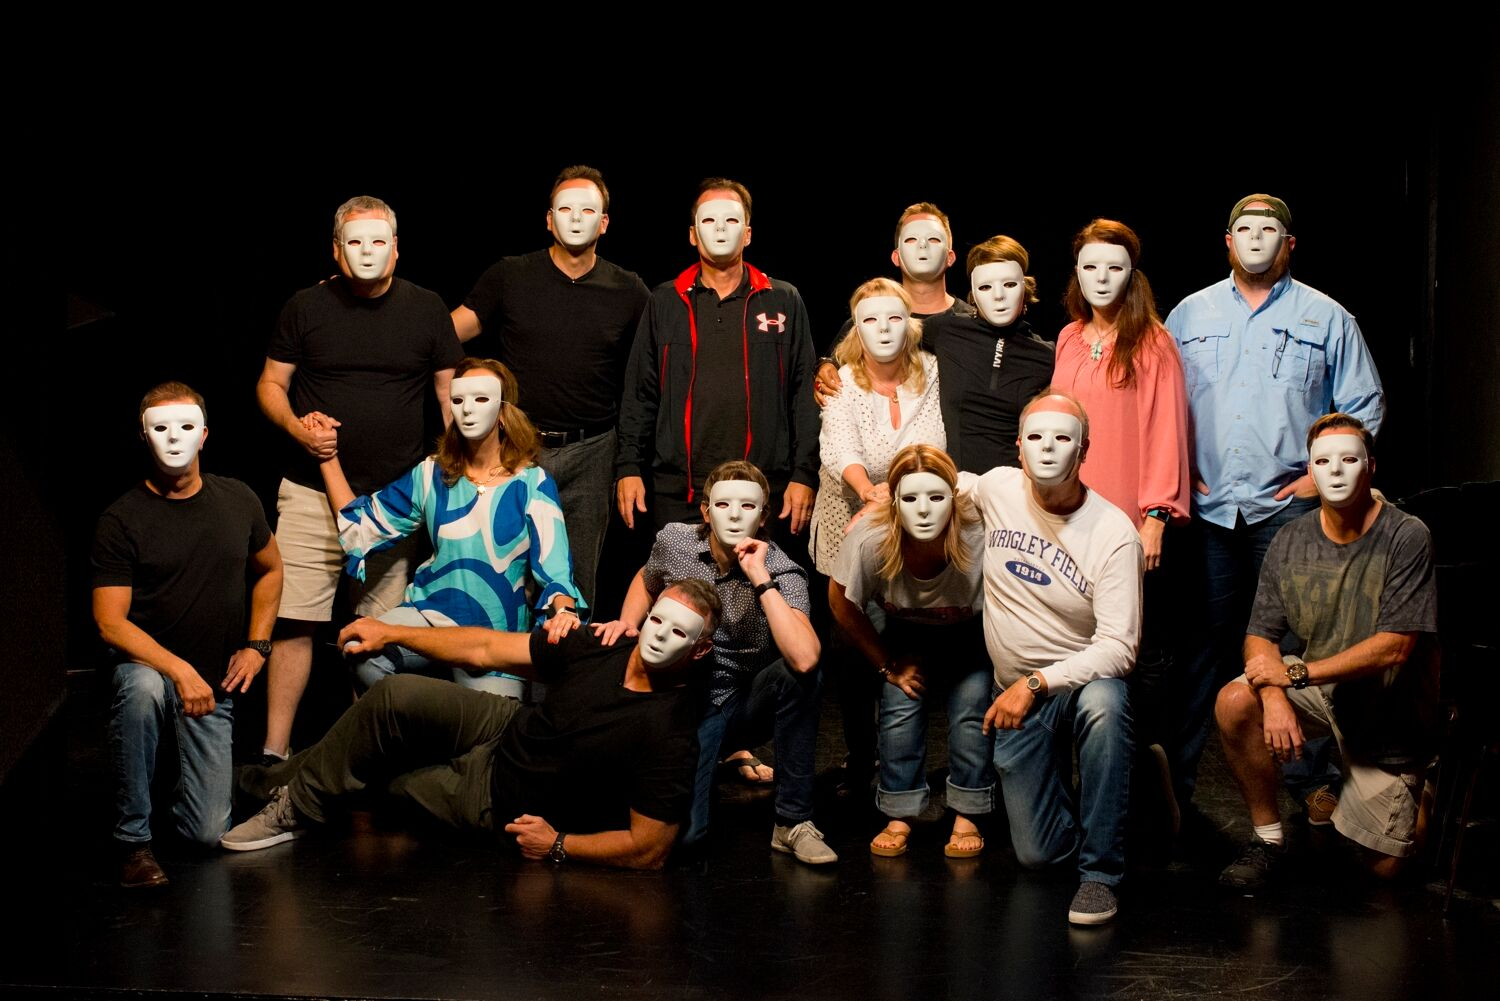 Theater Mask Workshops Provide New Tools for the Treatment of Addiction